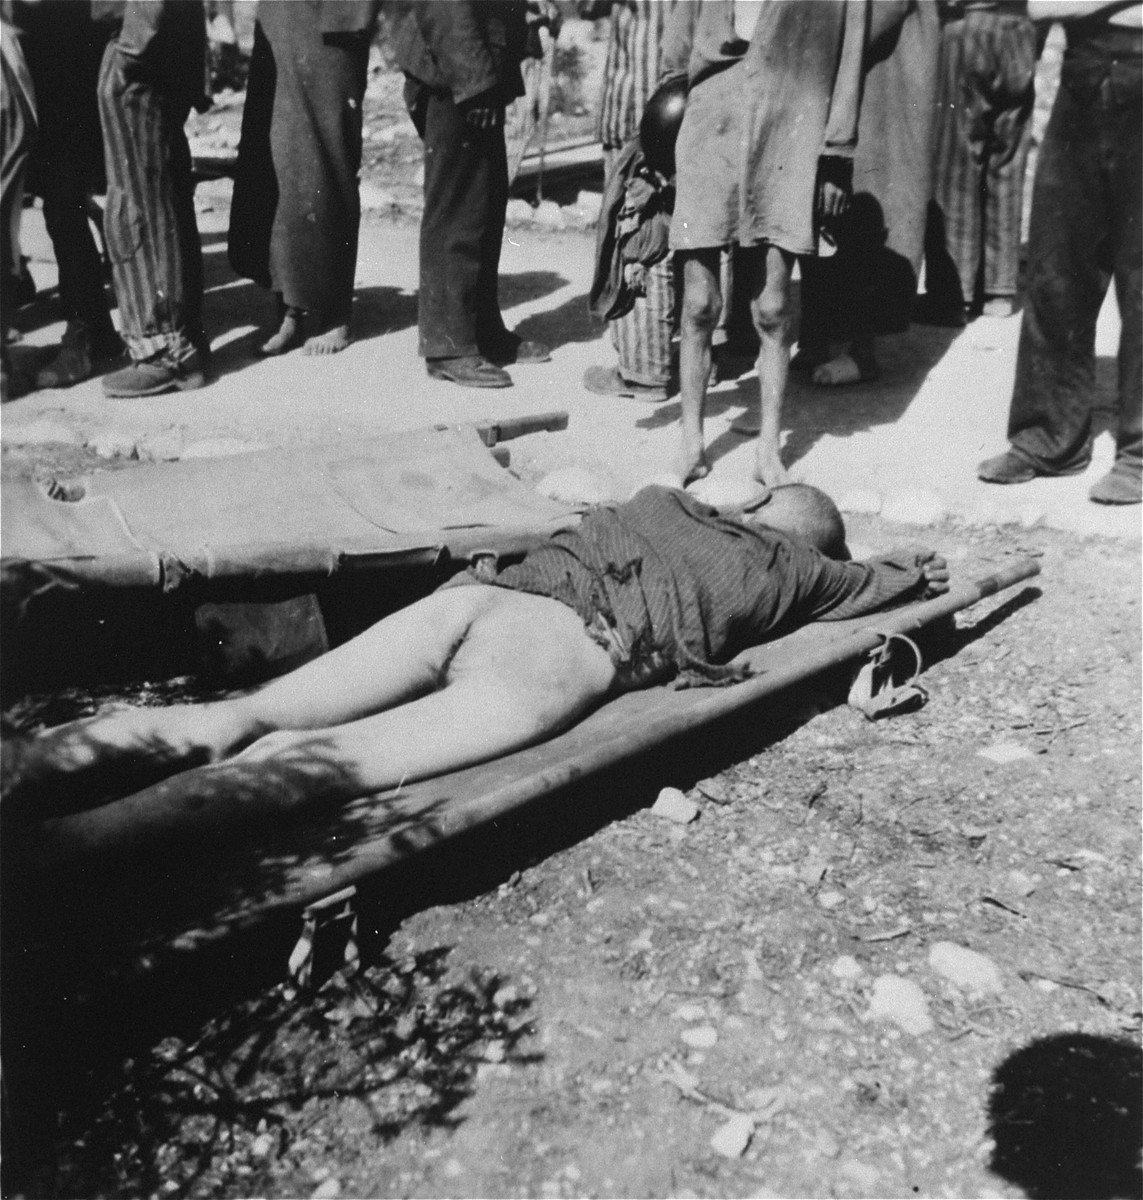 A corpse lies on a stretcher in the Ebensee concentration camp.